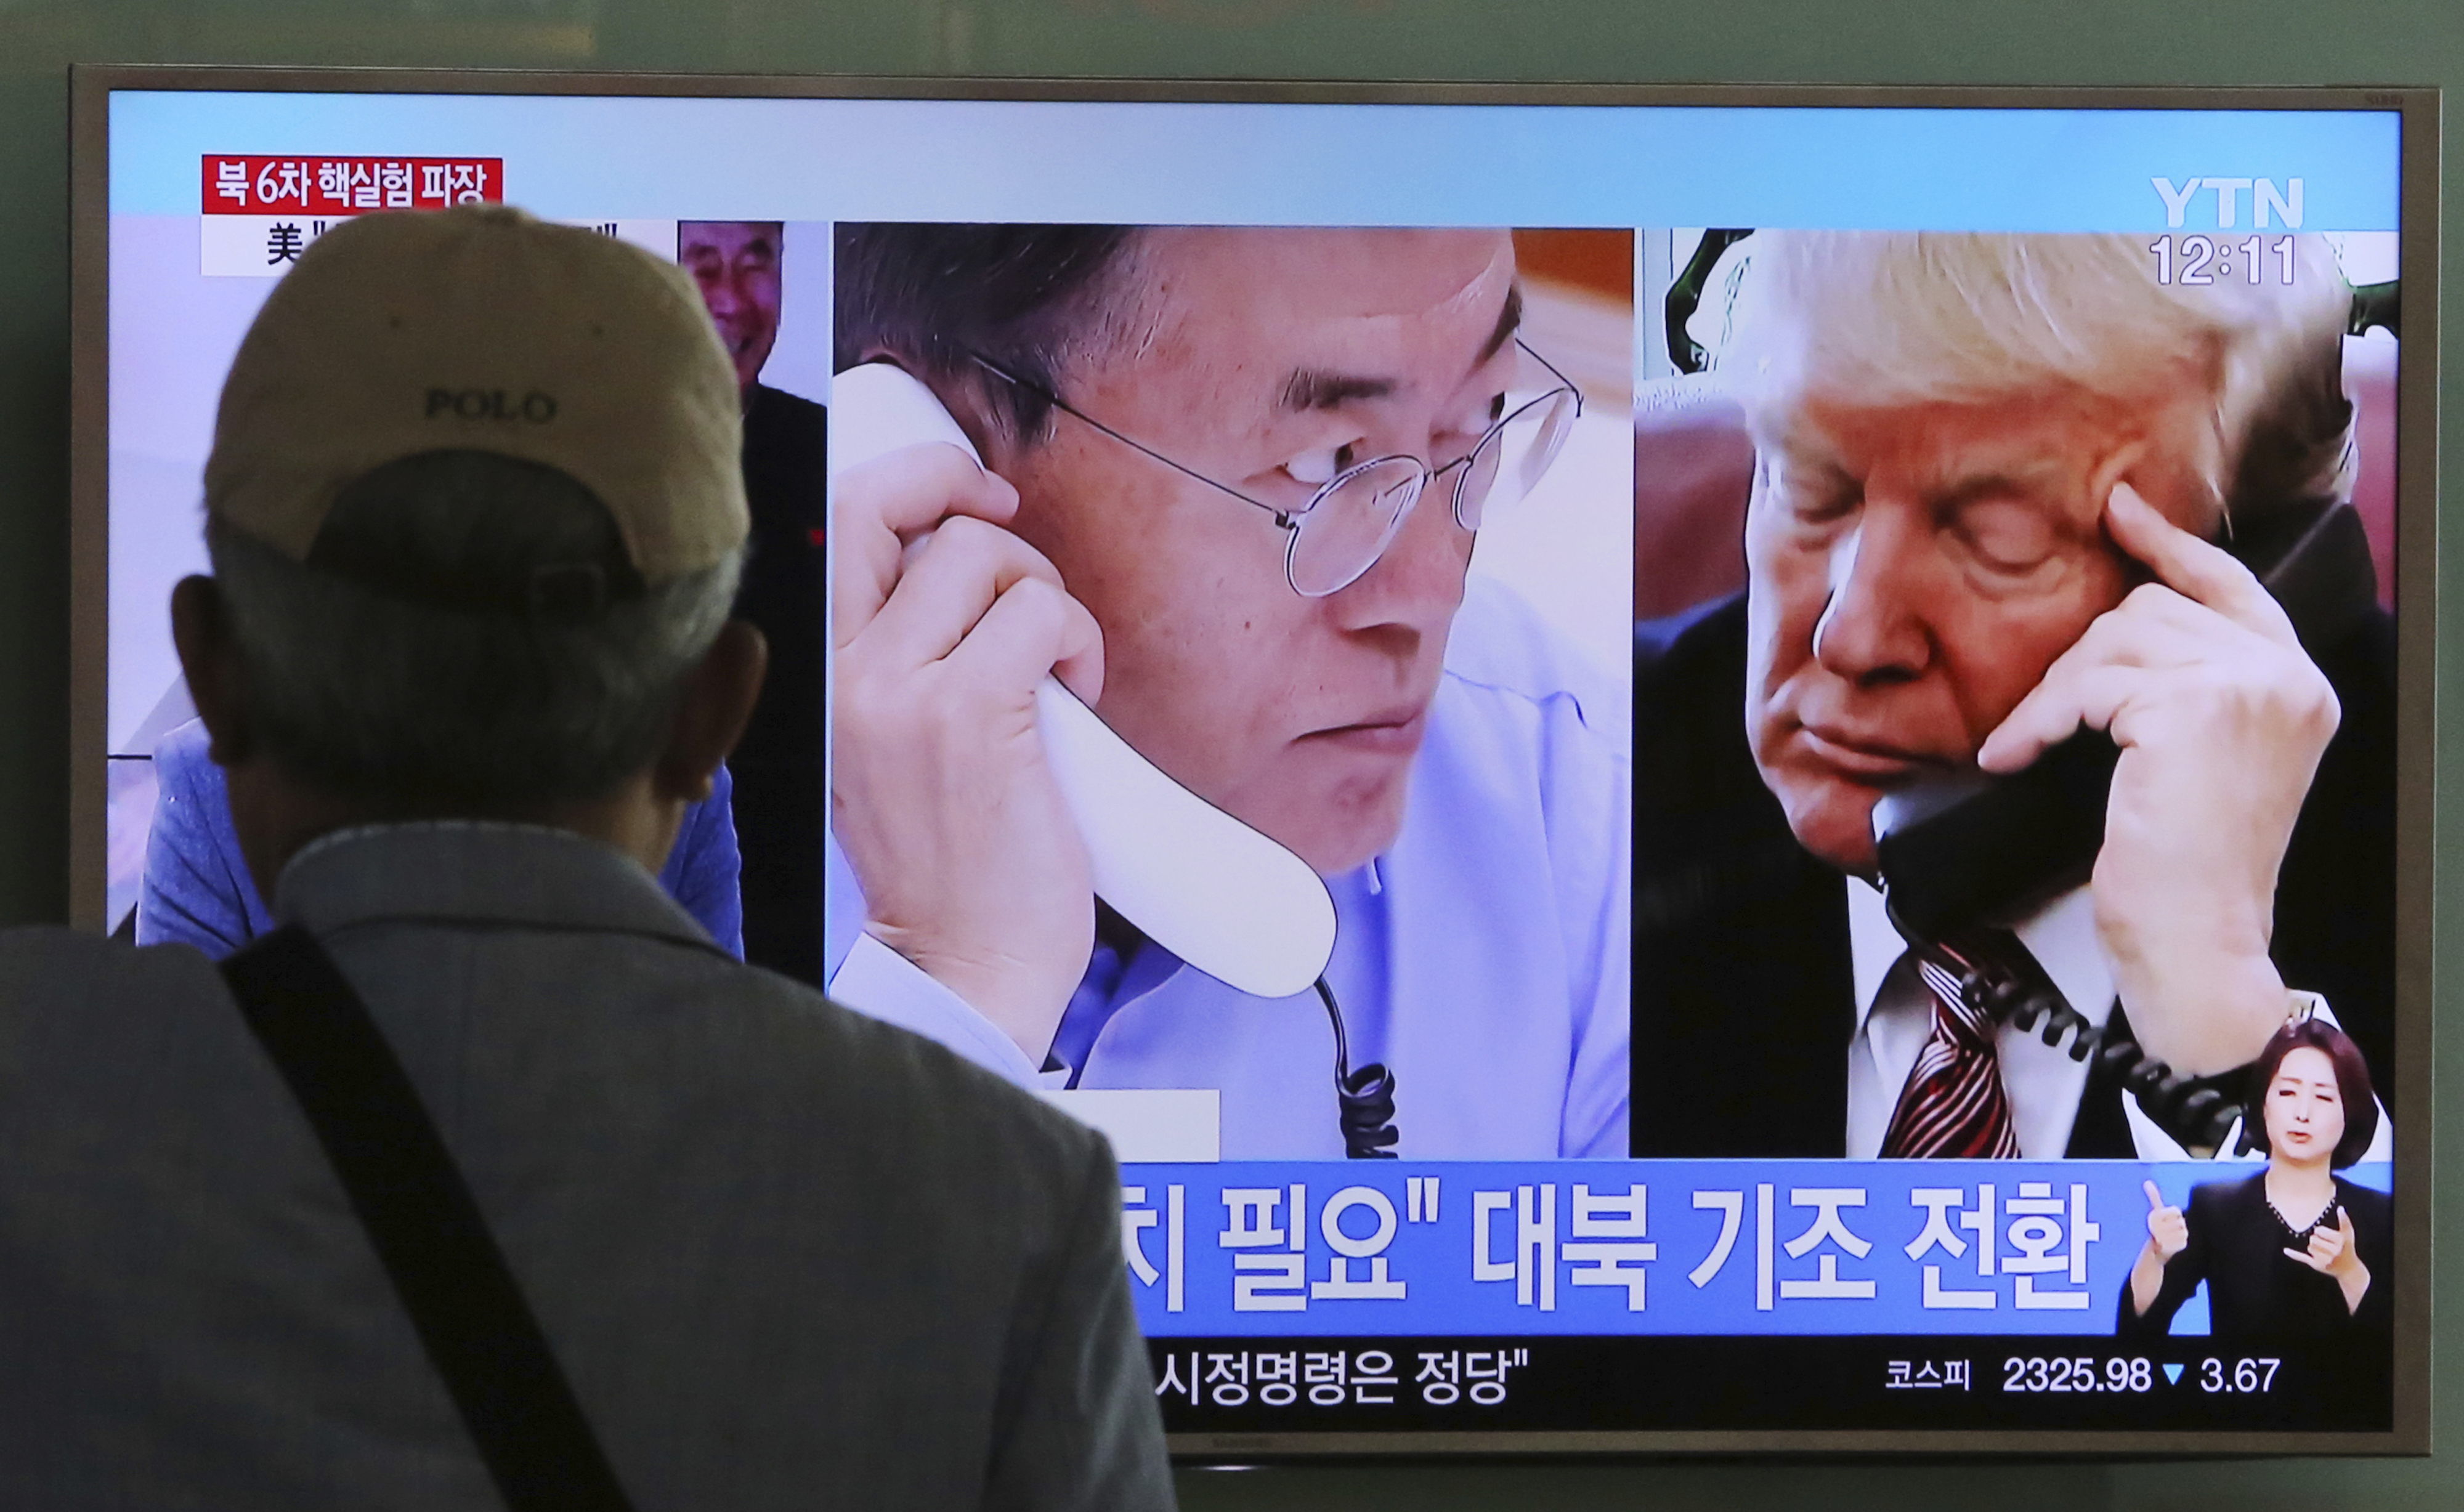 A man watches a TV screen showing U.S. President Donald Trump, right, and South Korean President Moon Jae-in during a news program at the Seoul Railway Station in South Korea, Sept. 5, 2017.